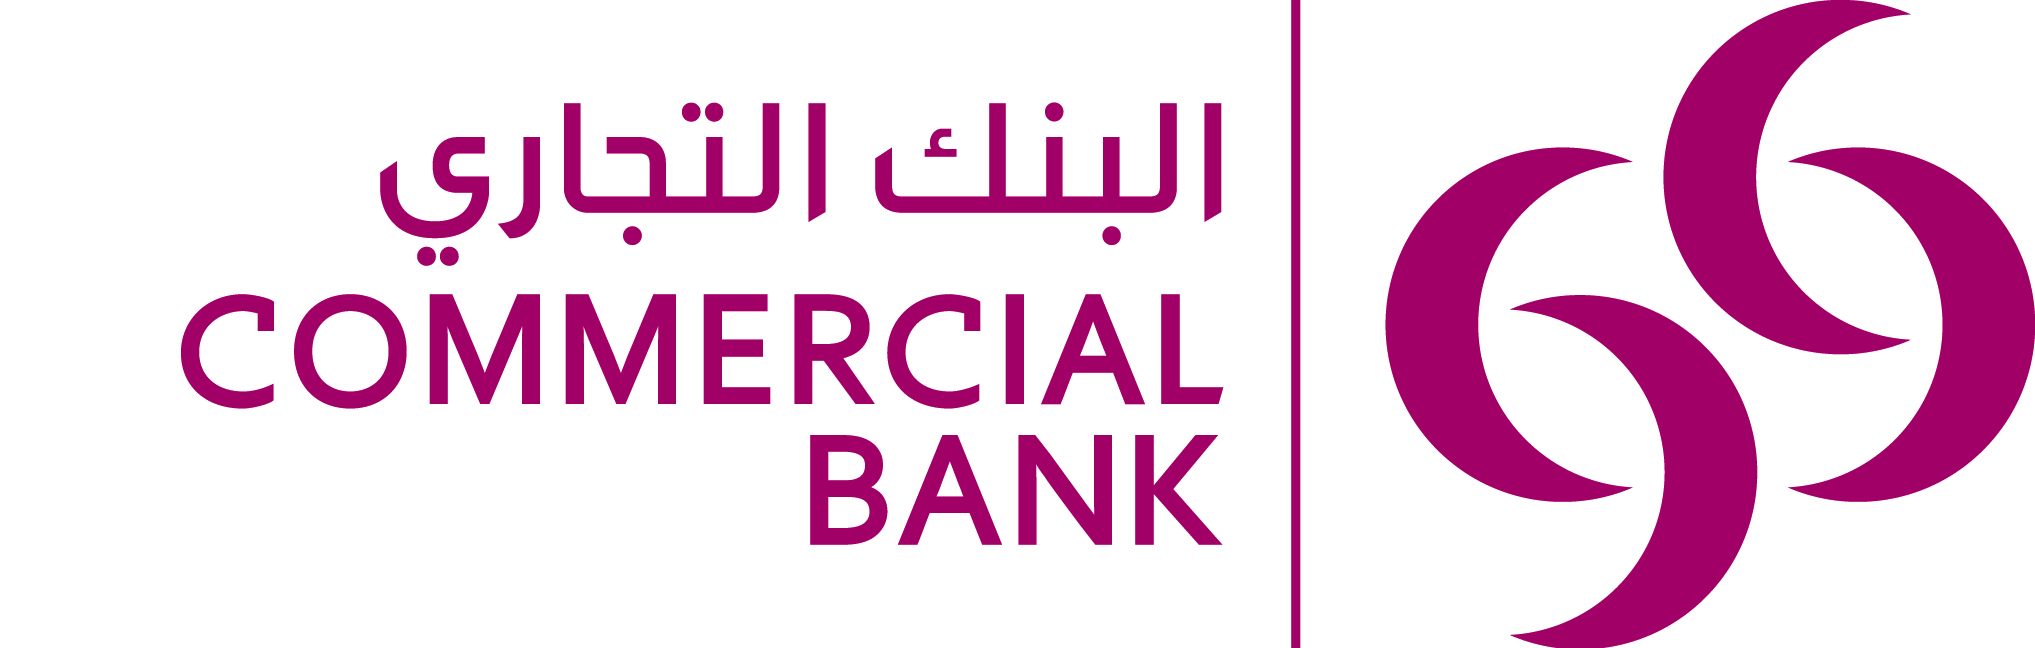 Commercial Bank of Qatar logo